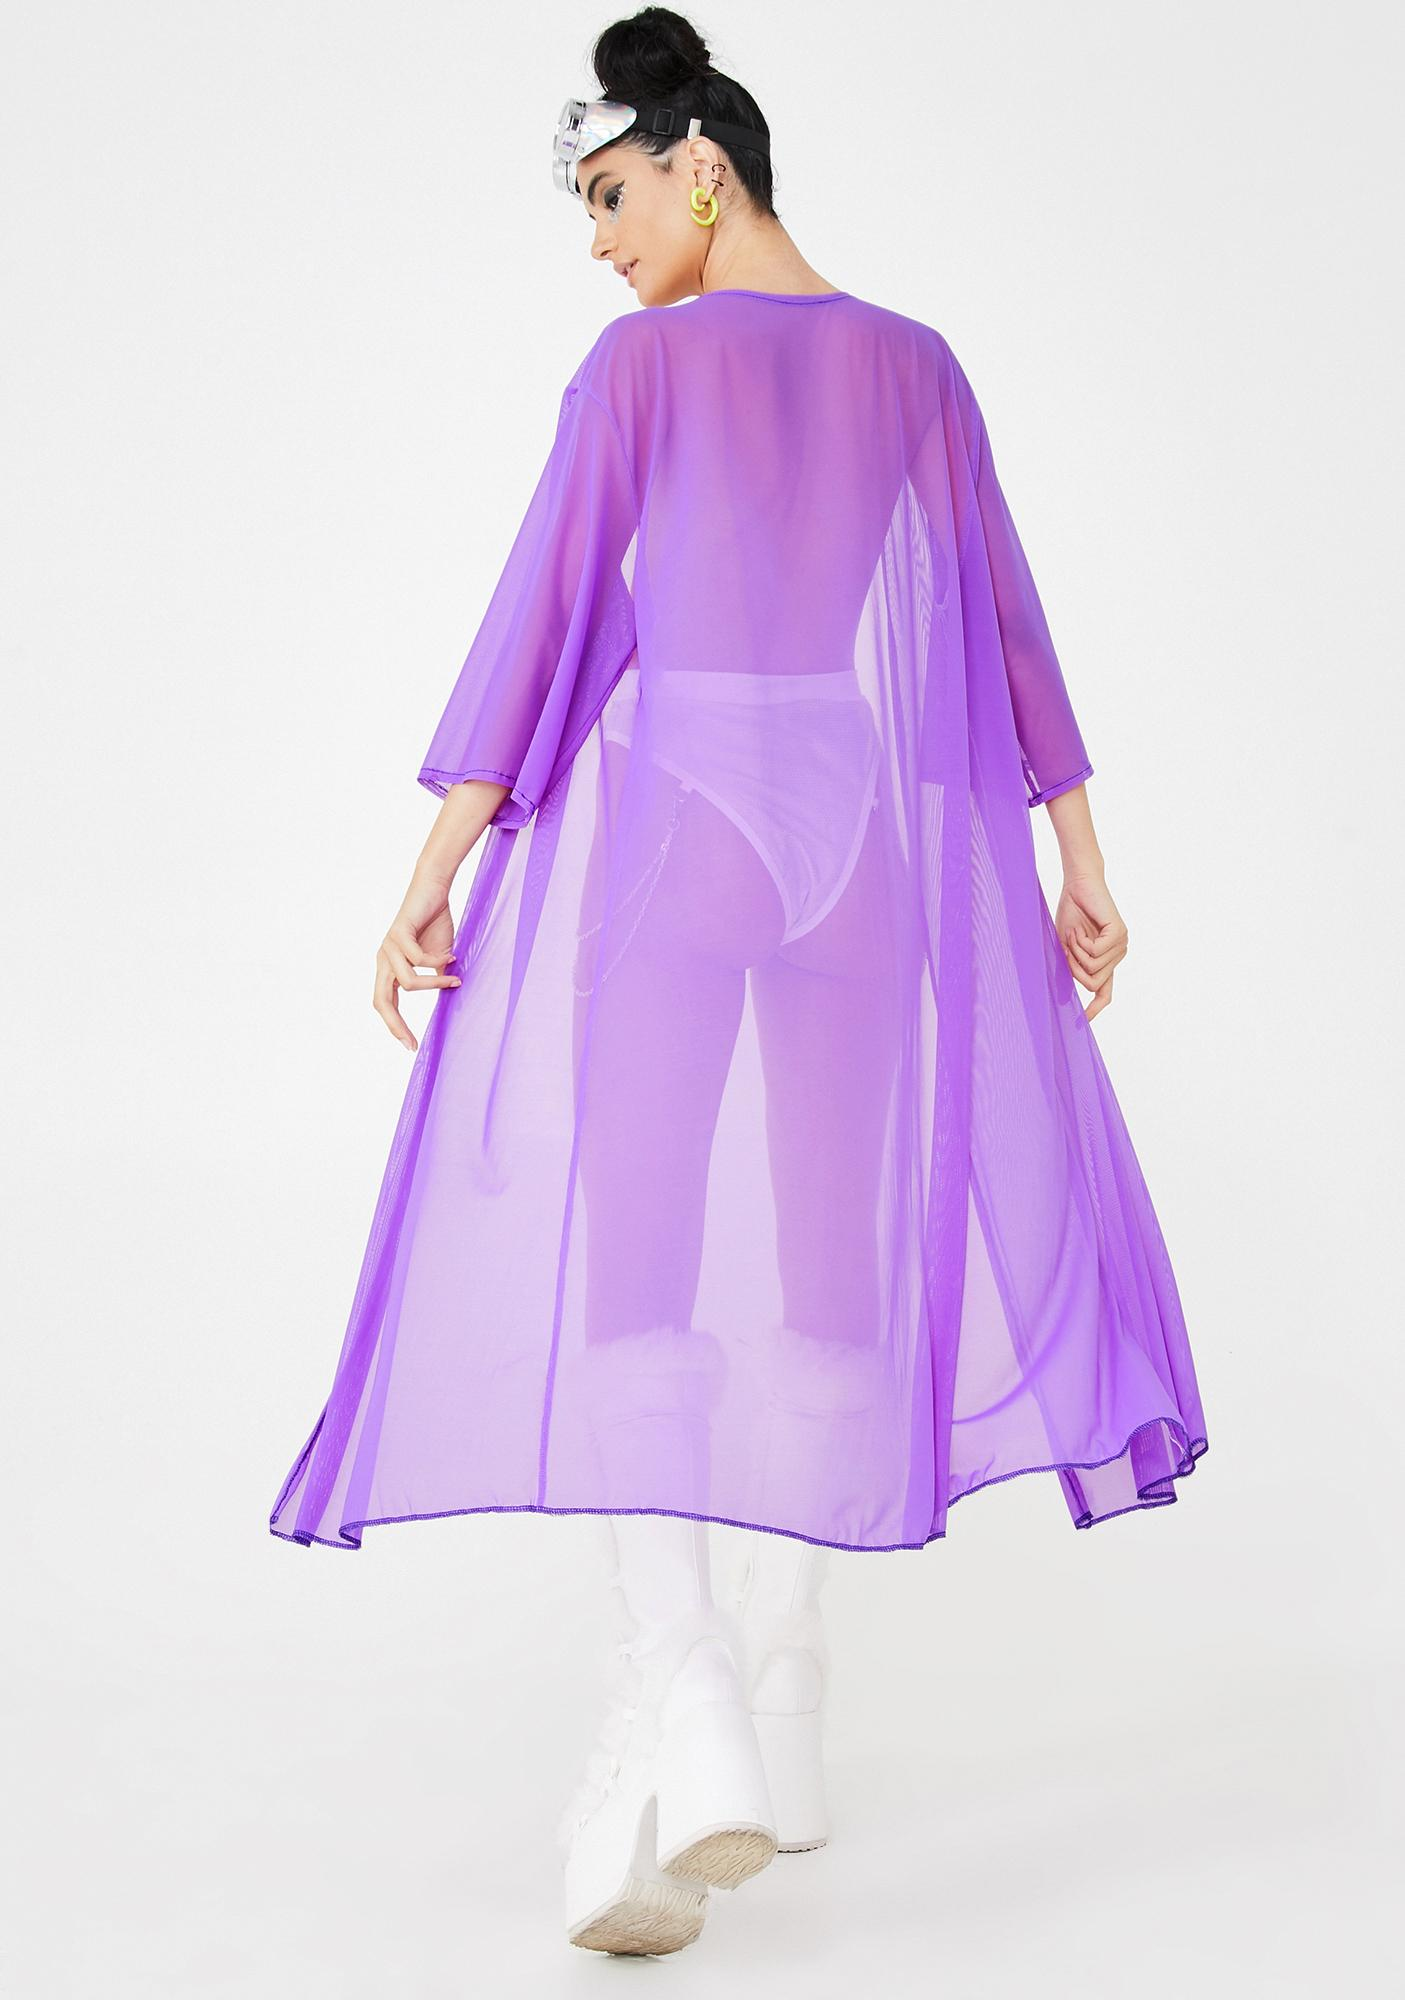 Rolita Rave Couture Inferno Mesh Cover Up